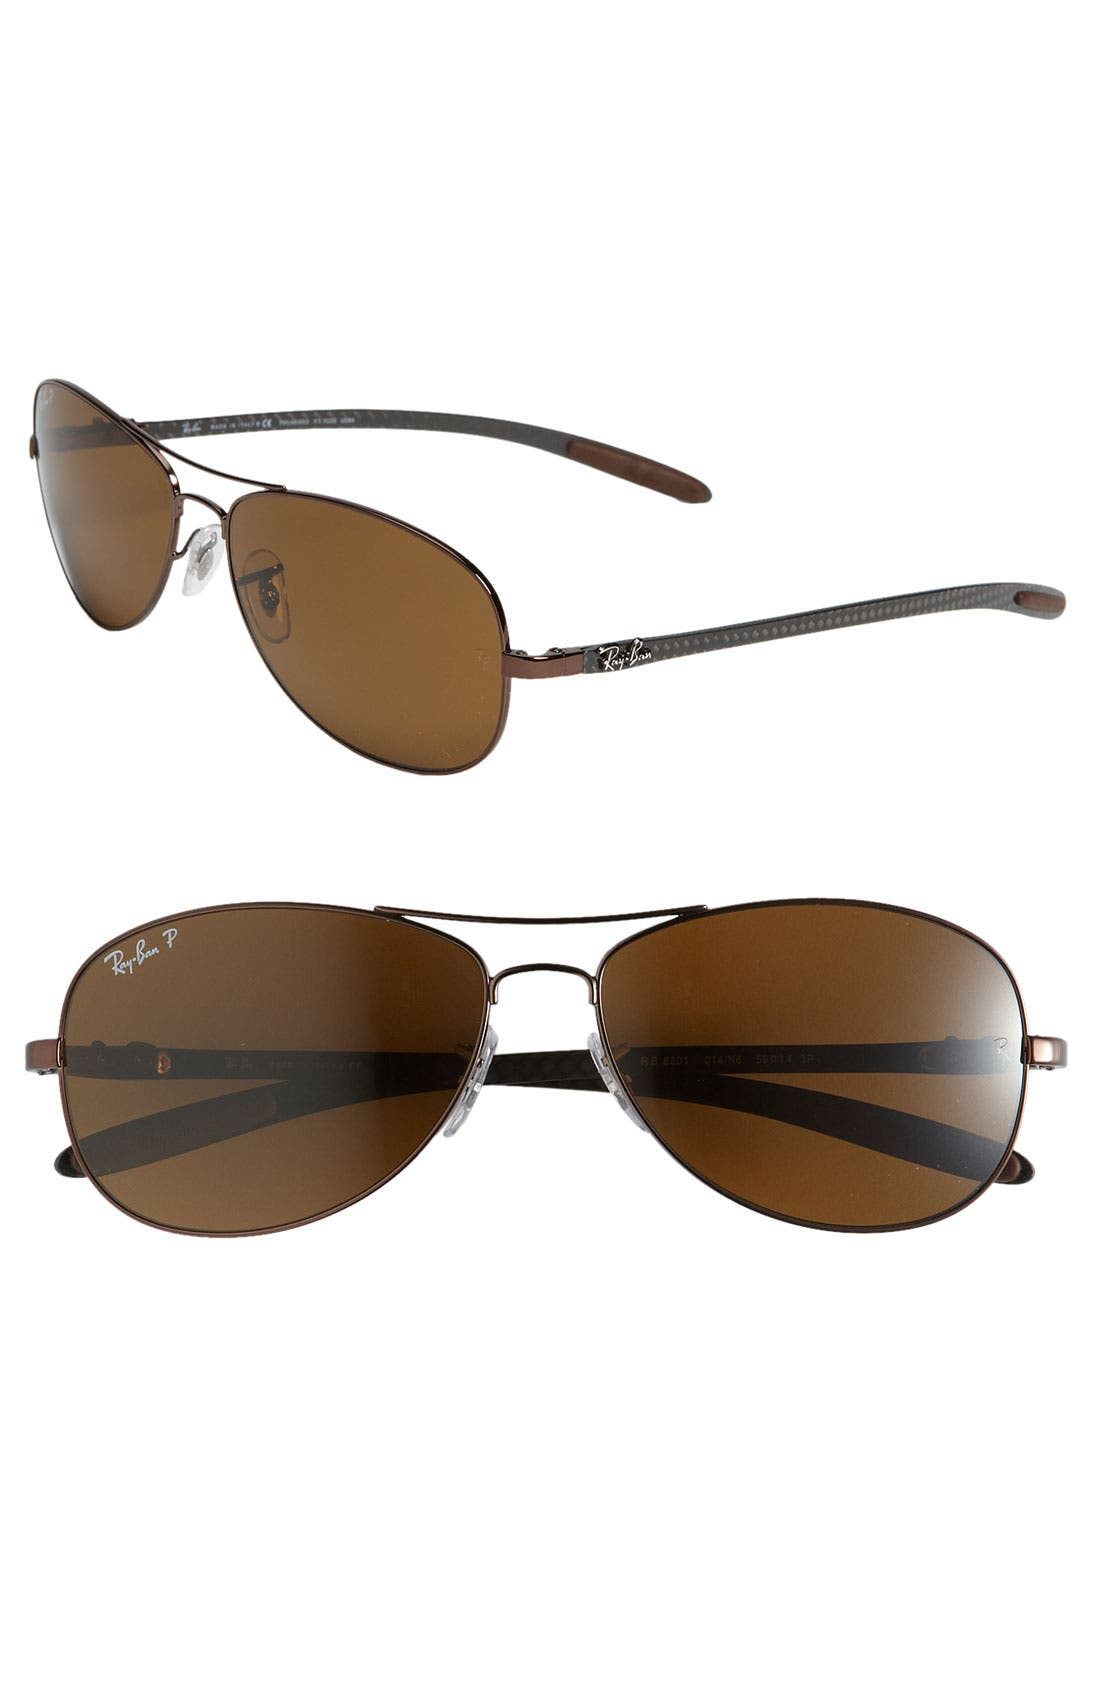 Main Image - Ray-Ban 'Tech' Polarized 59mm Aviator Sunglasses